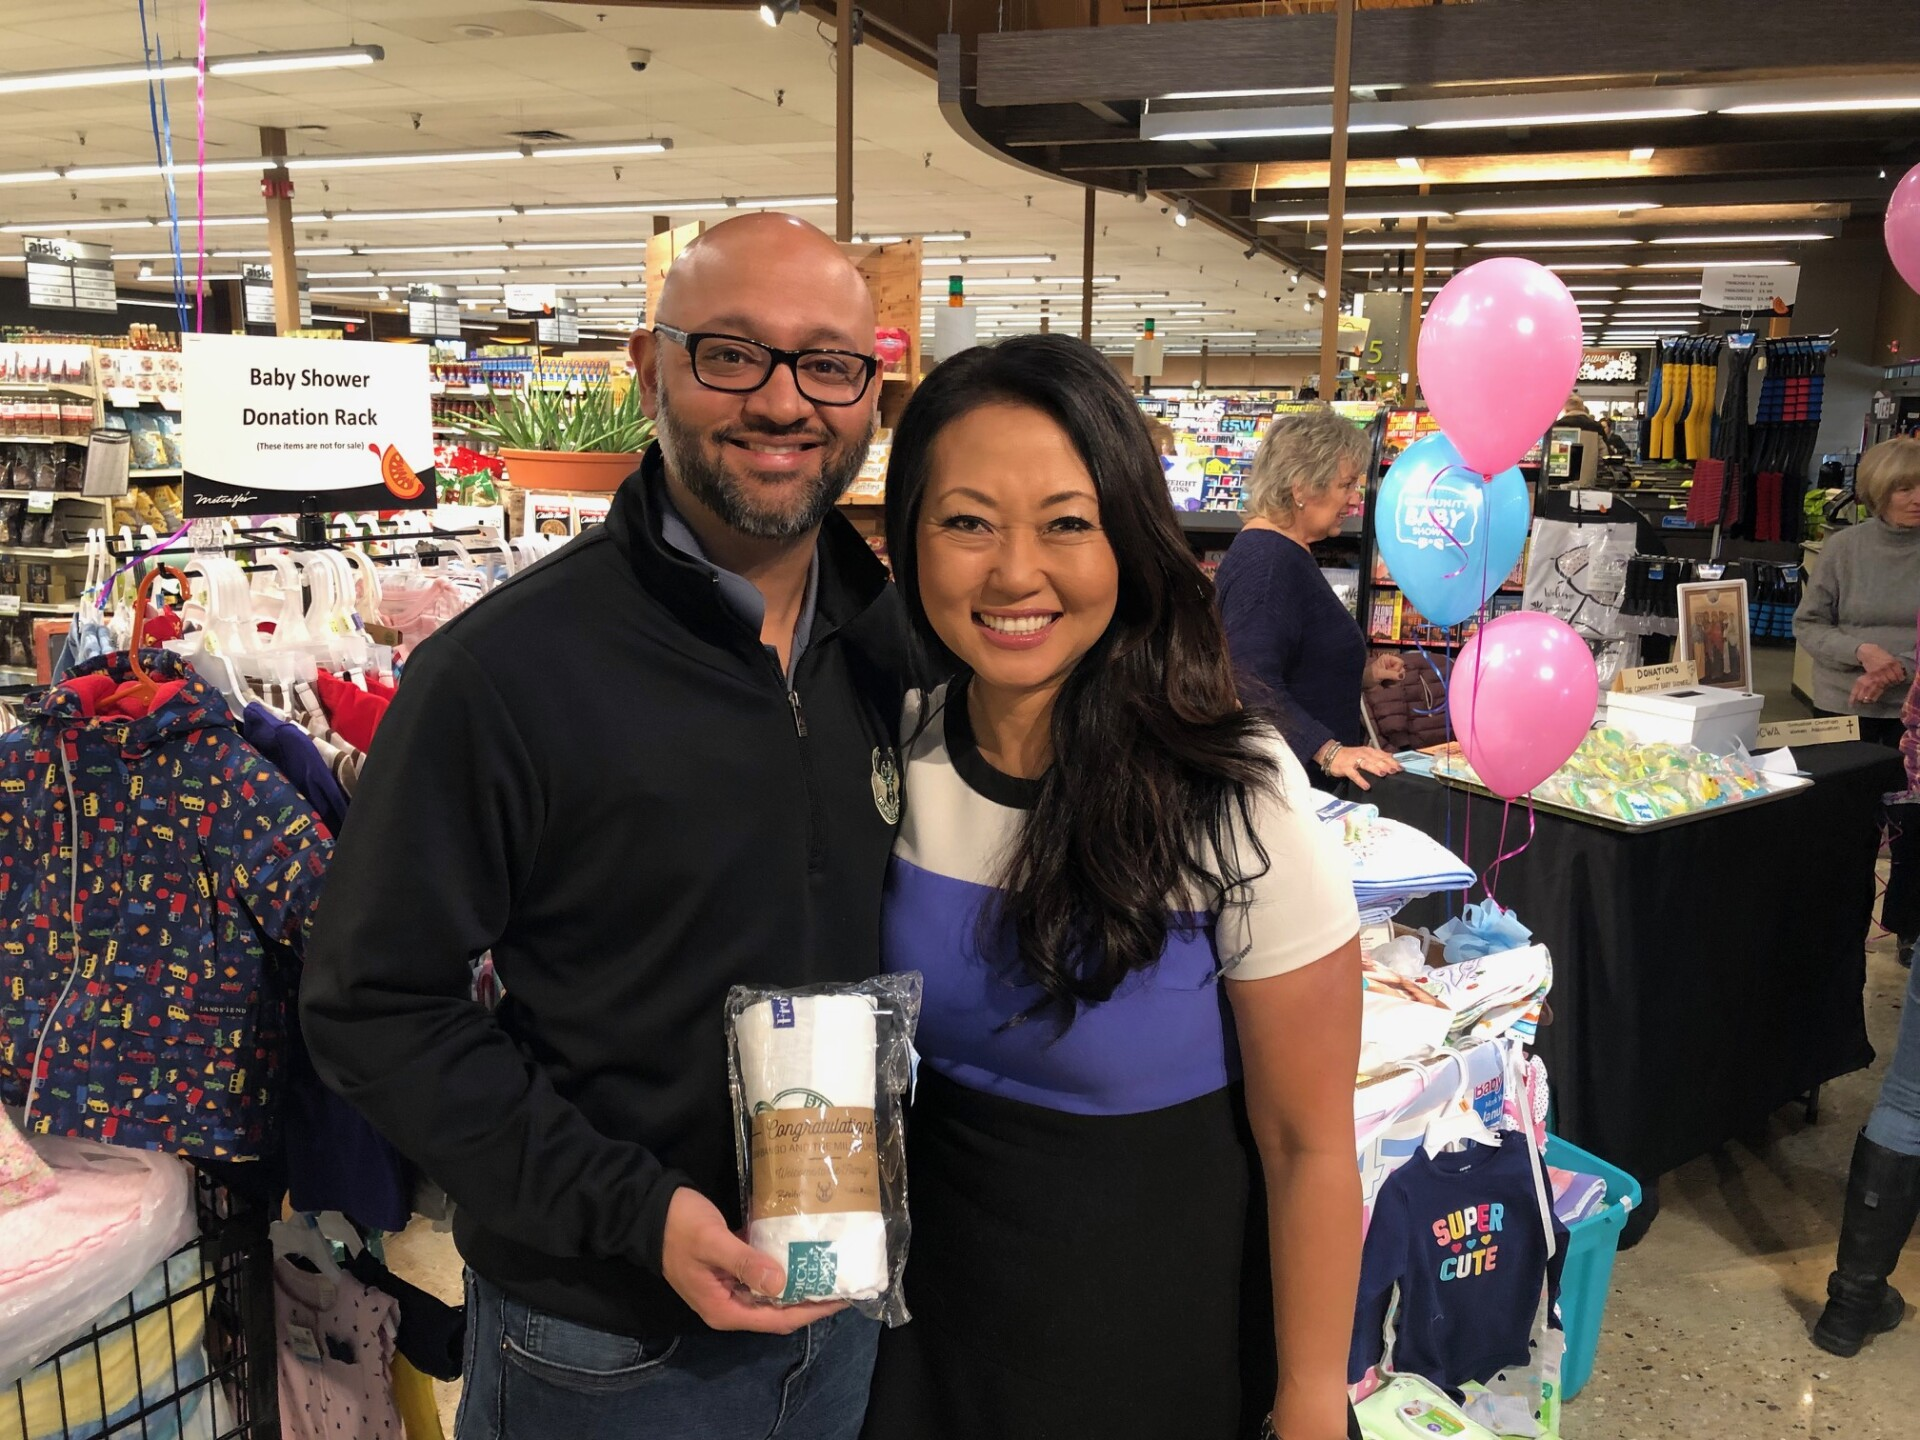 TODAY'S TMJ4's Susan Kim helps with donations for the Community Baby Shower